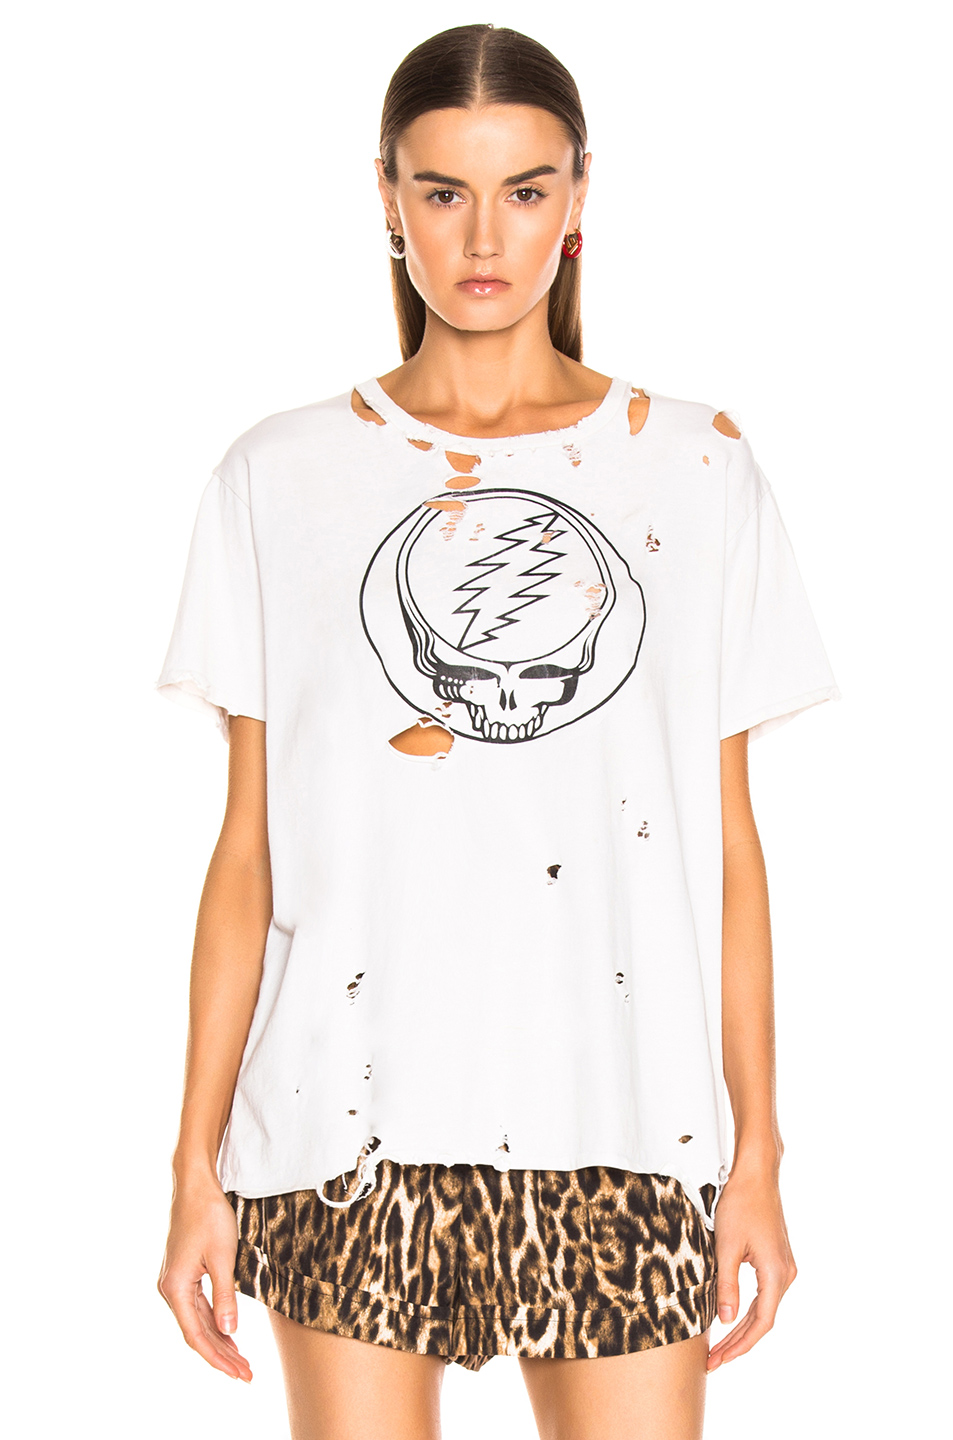 R13 Steal Your Face Distressed Boy Tee